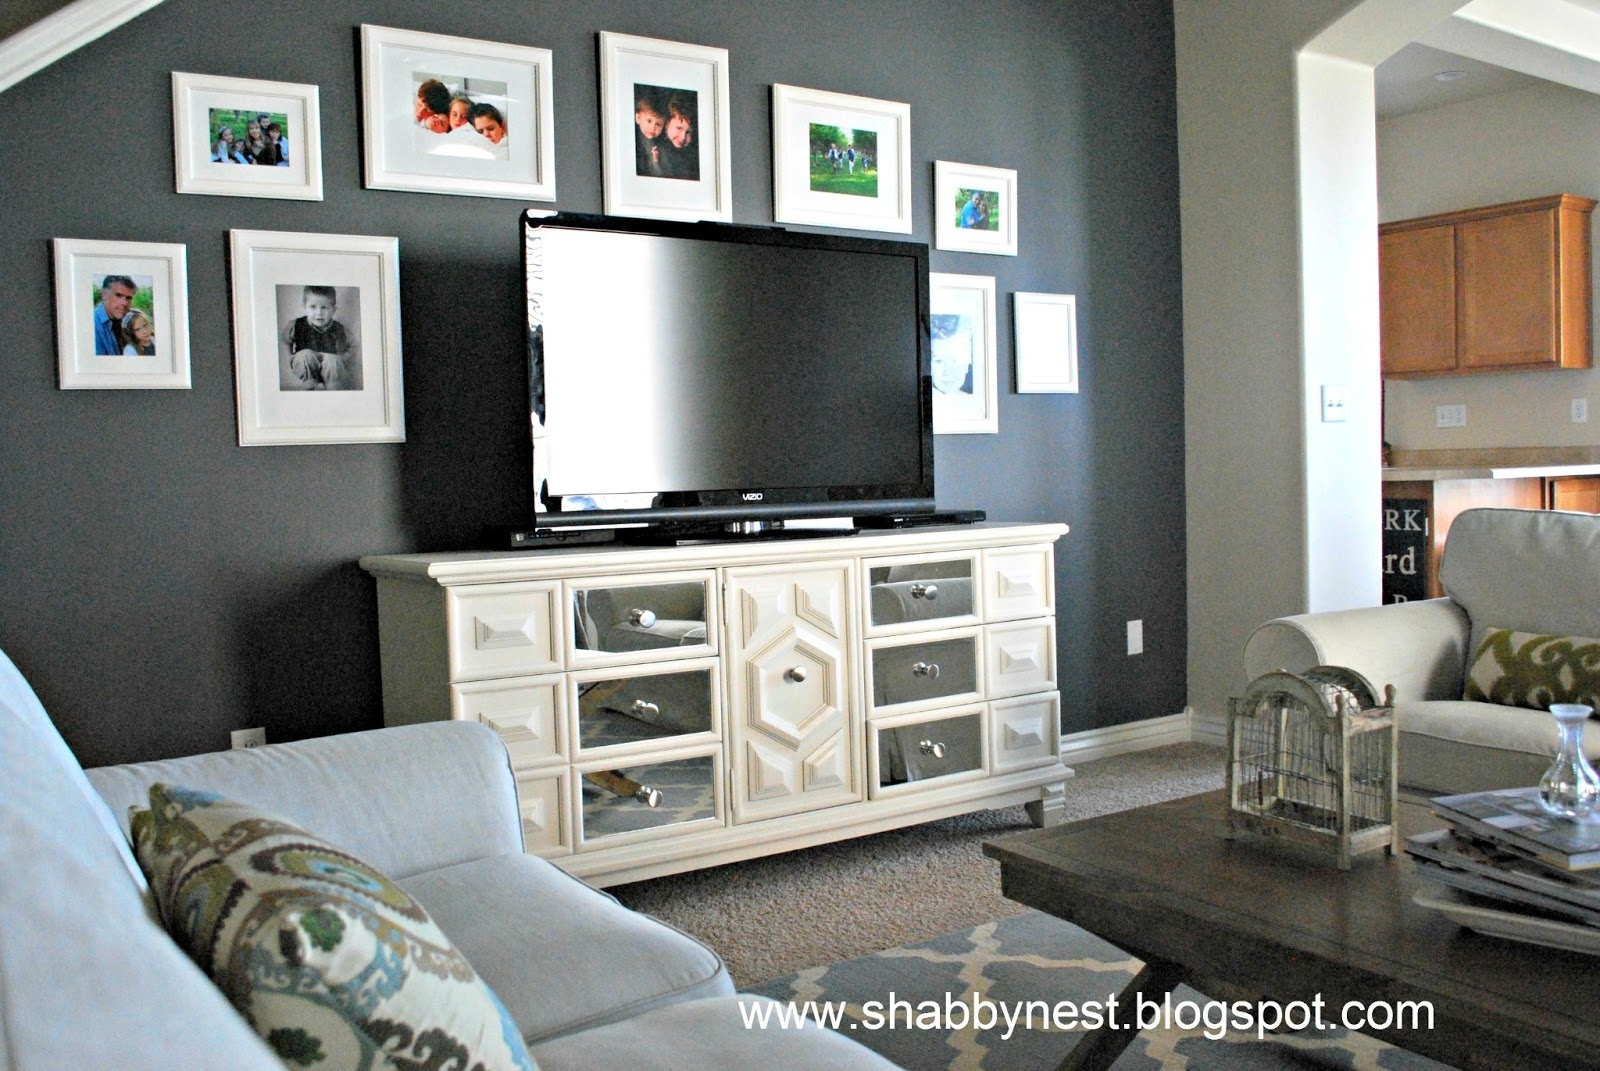 Wall Decor: Awesome Decorating A Living Room With Gray Walls Within 2018 Wall Accents For Grey Room (Gallery 3 of 15)